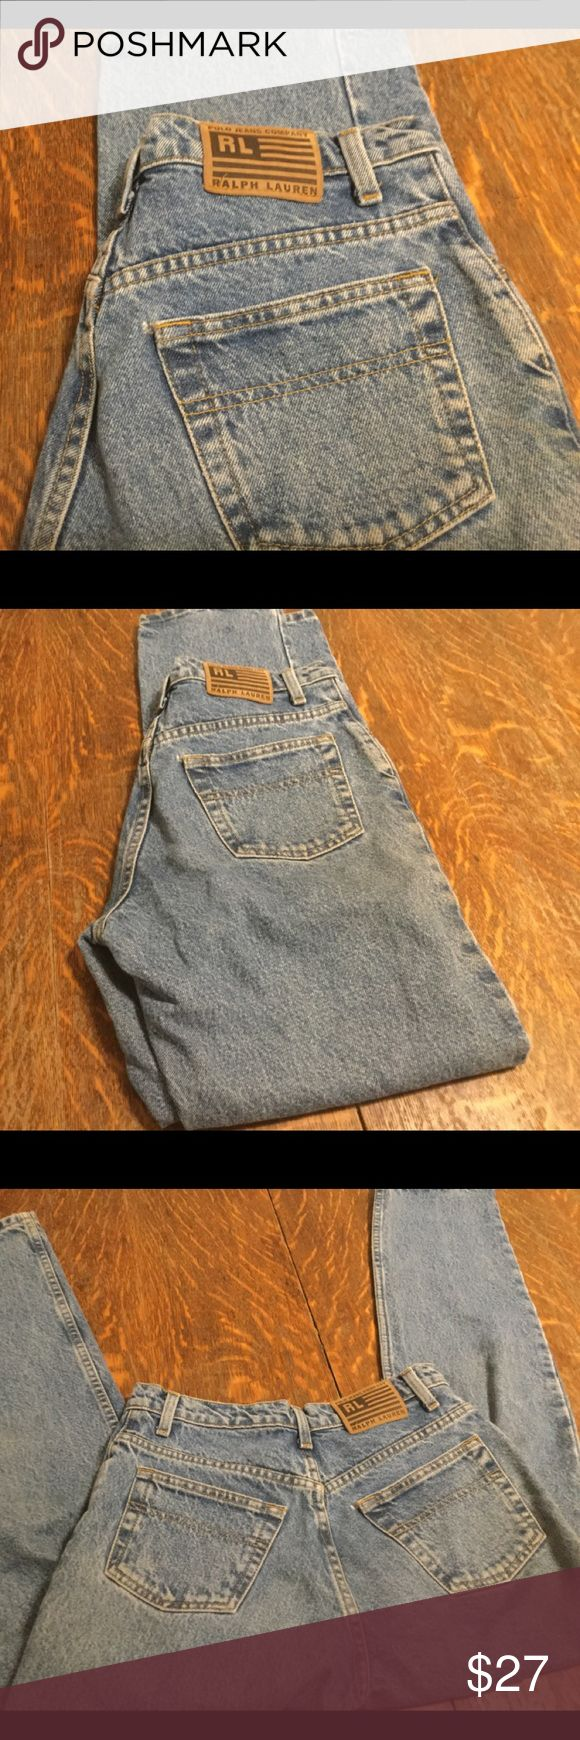 Ralph Lauren vintage woman's jeans size 6 x 31 These are older style, mom jeans possibly? Stone washed and some wear, please look closely. Took pics of back pocket where it seems as if there is a spot of wear but they are mainly in very good used condition size 6 x 31, relaxed fit. Ralph Lauren Jeans Straight Leg